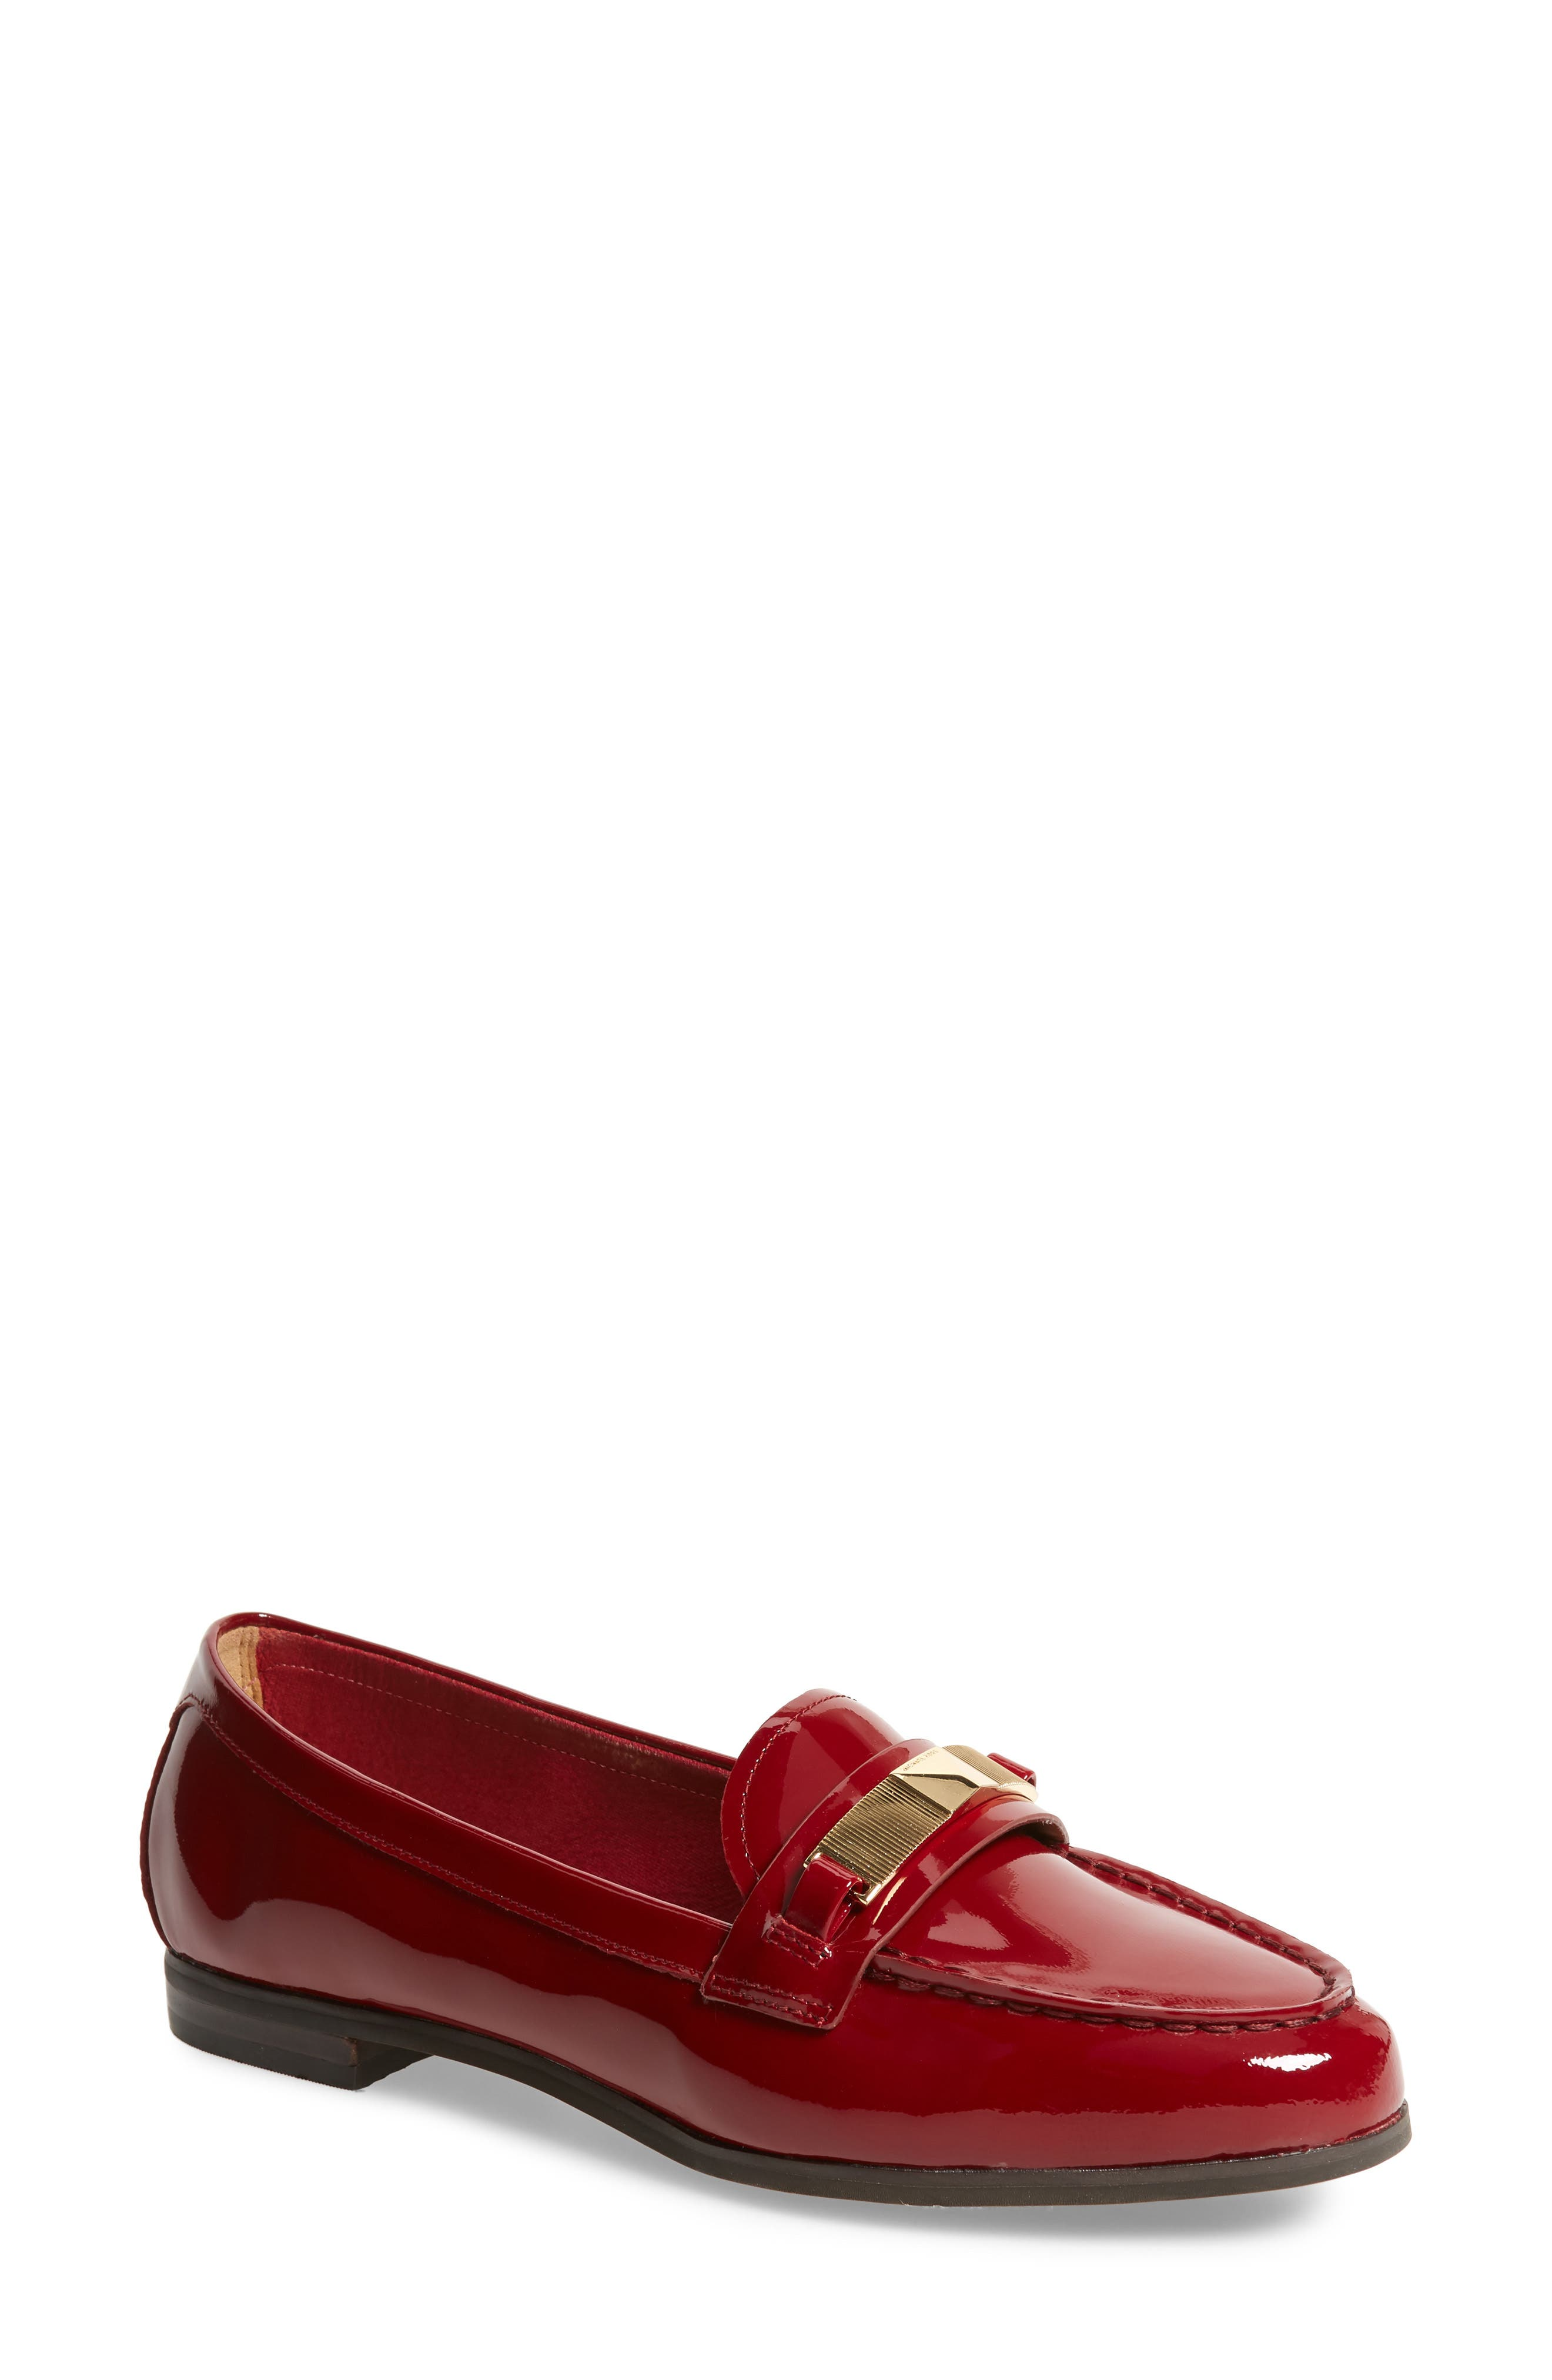 Paloma Loafer in Maroon Patent